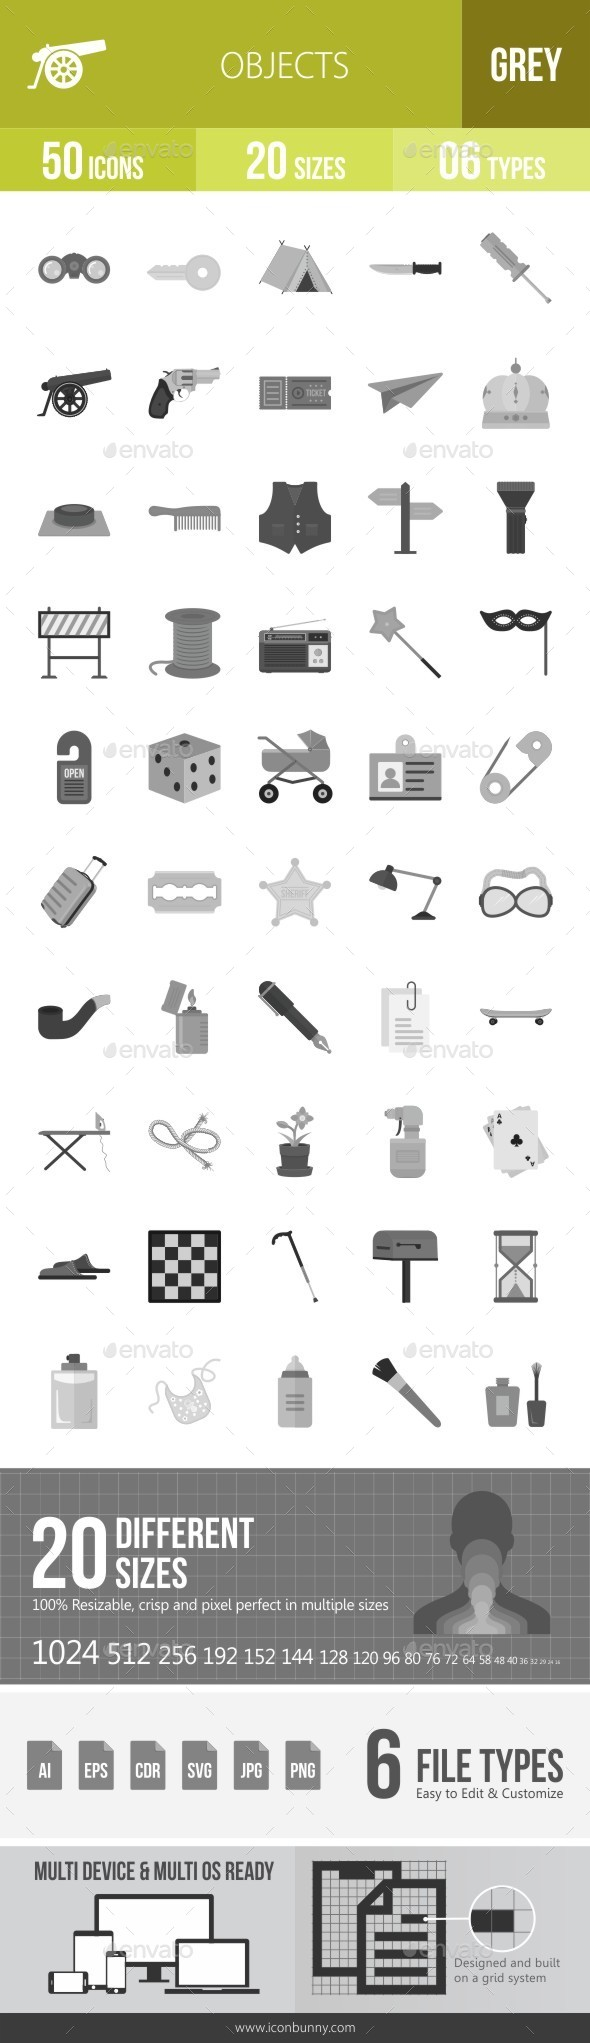 Objects Greyscale Icons - Icons